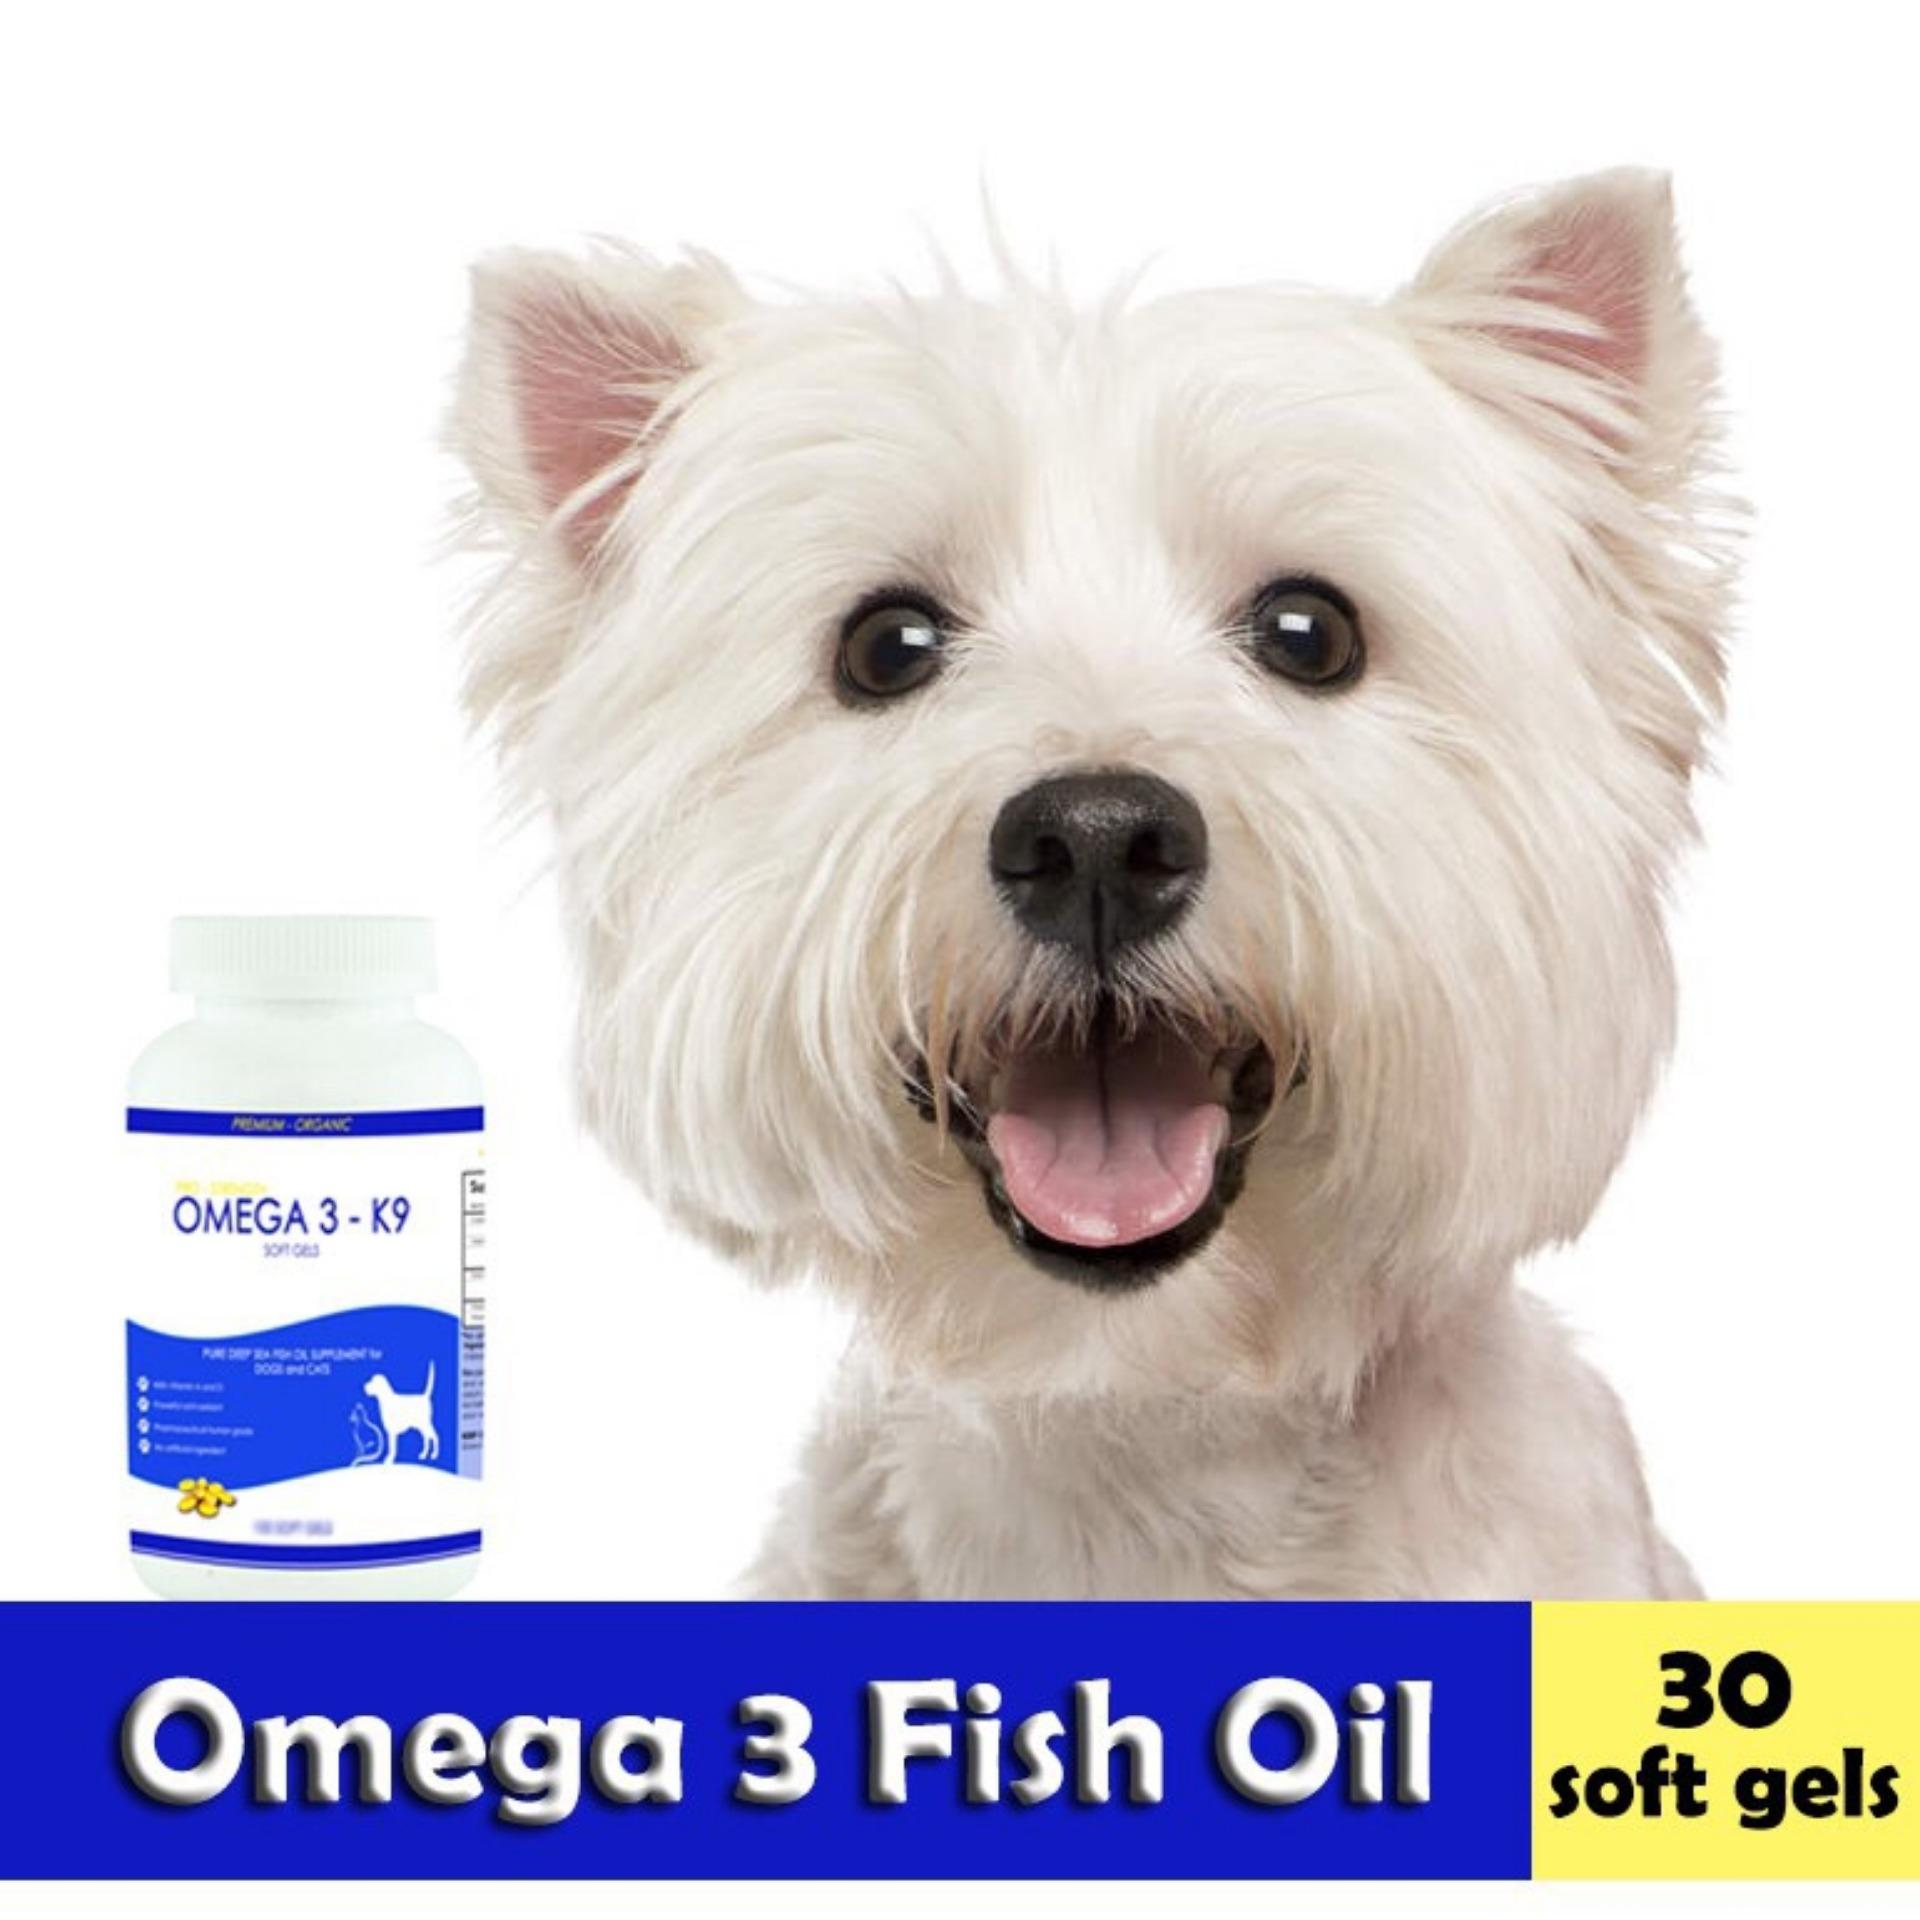 Pure Deep Sea Fish Oil Omega 3 Supplement For Dogs And Cats 30 Soft Gels, Boosts Immune System By Pets Choice.